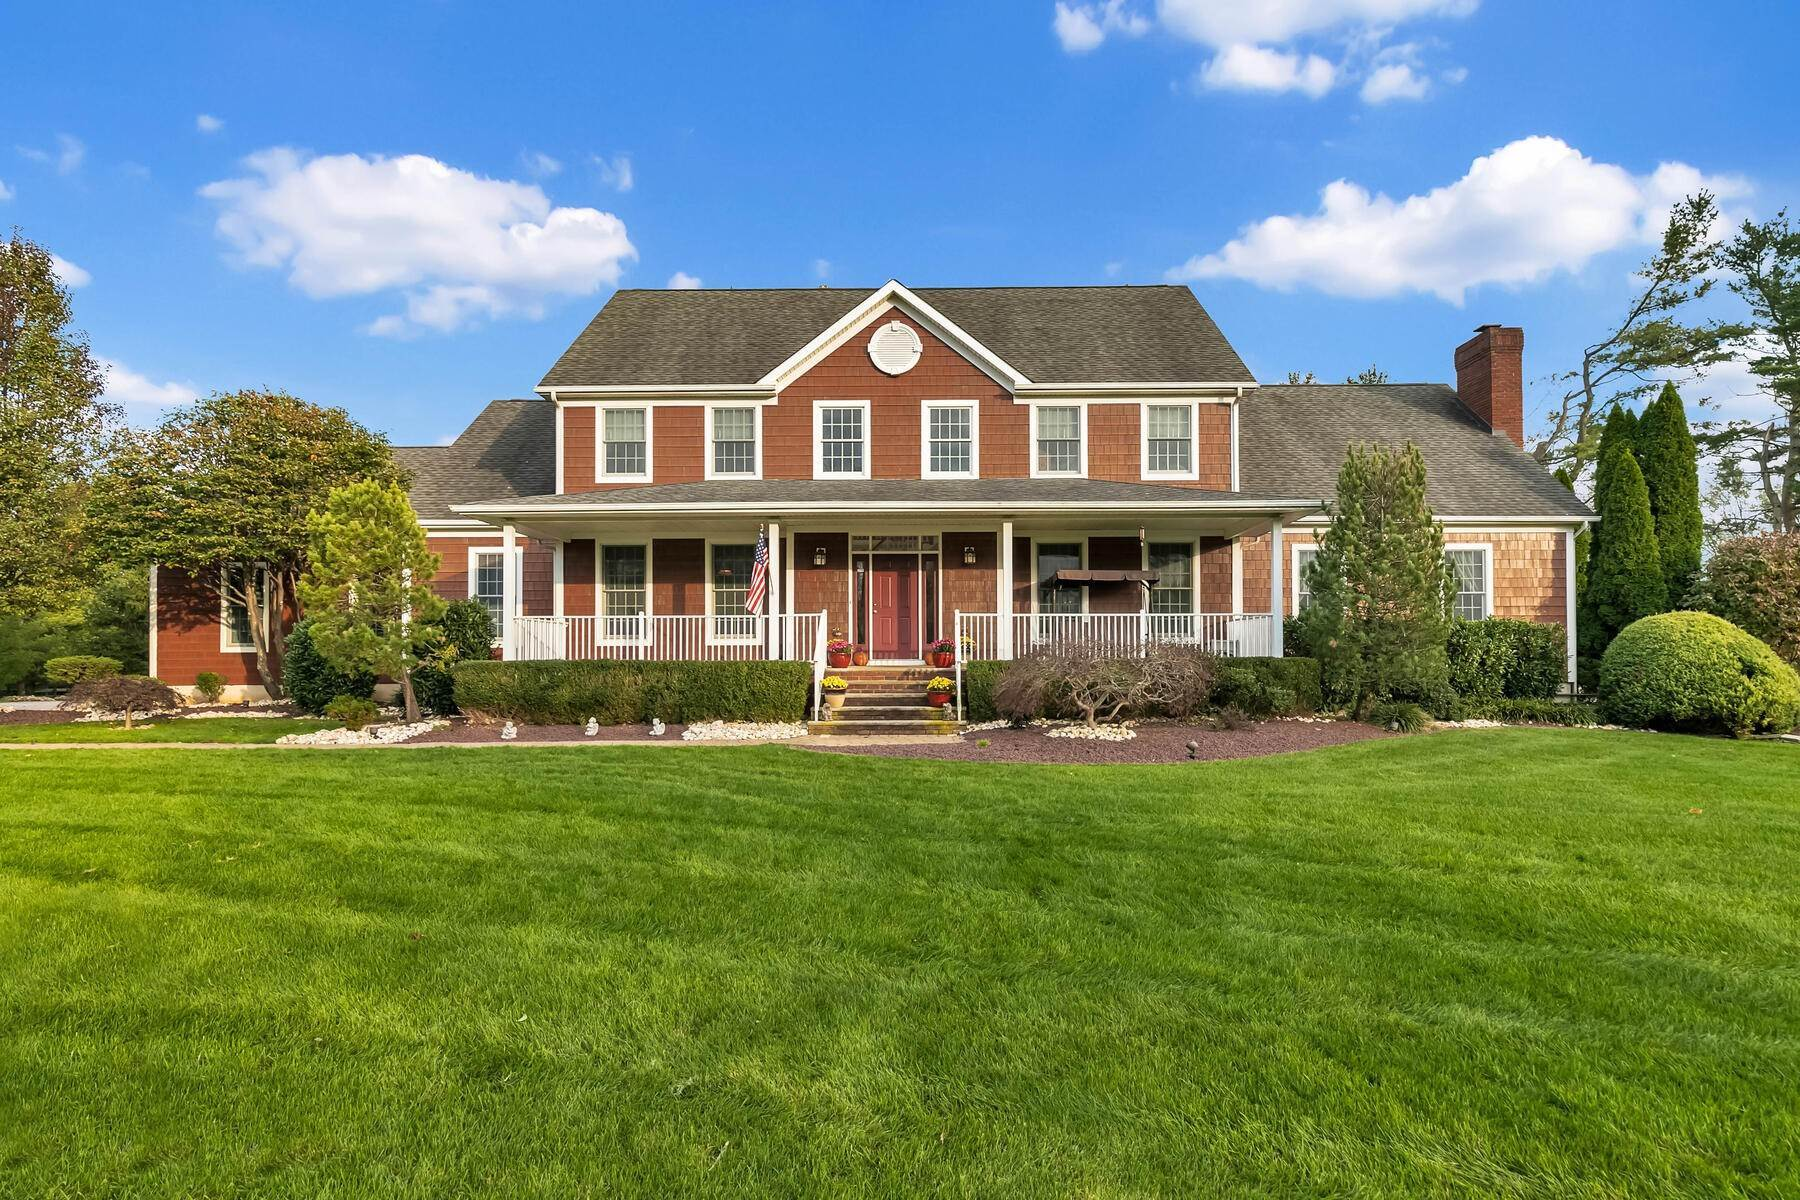 Single Family Homes for Sale at Magnificent Colonial 40 Yearling Path Colts Neck, New Jersey 07722 United States